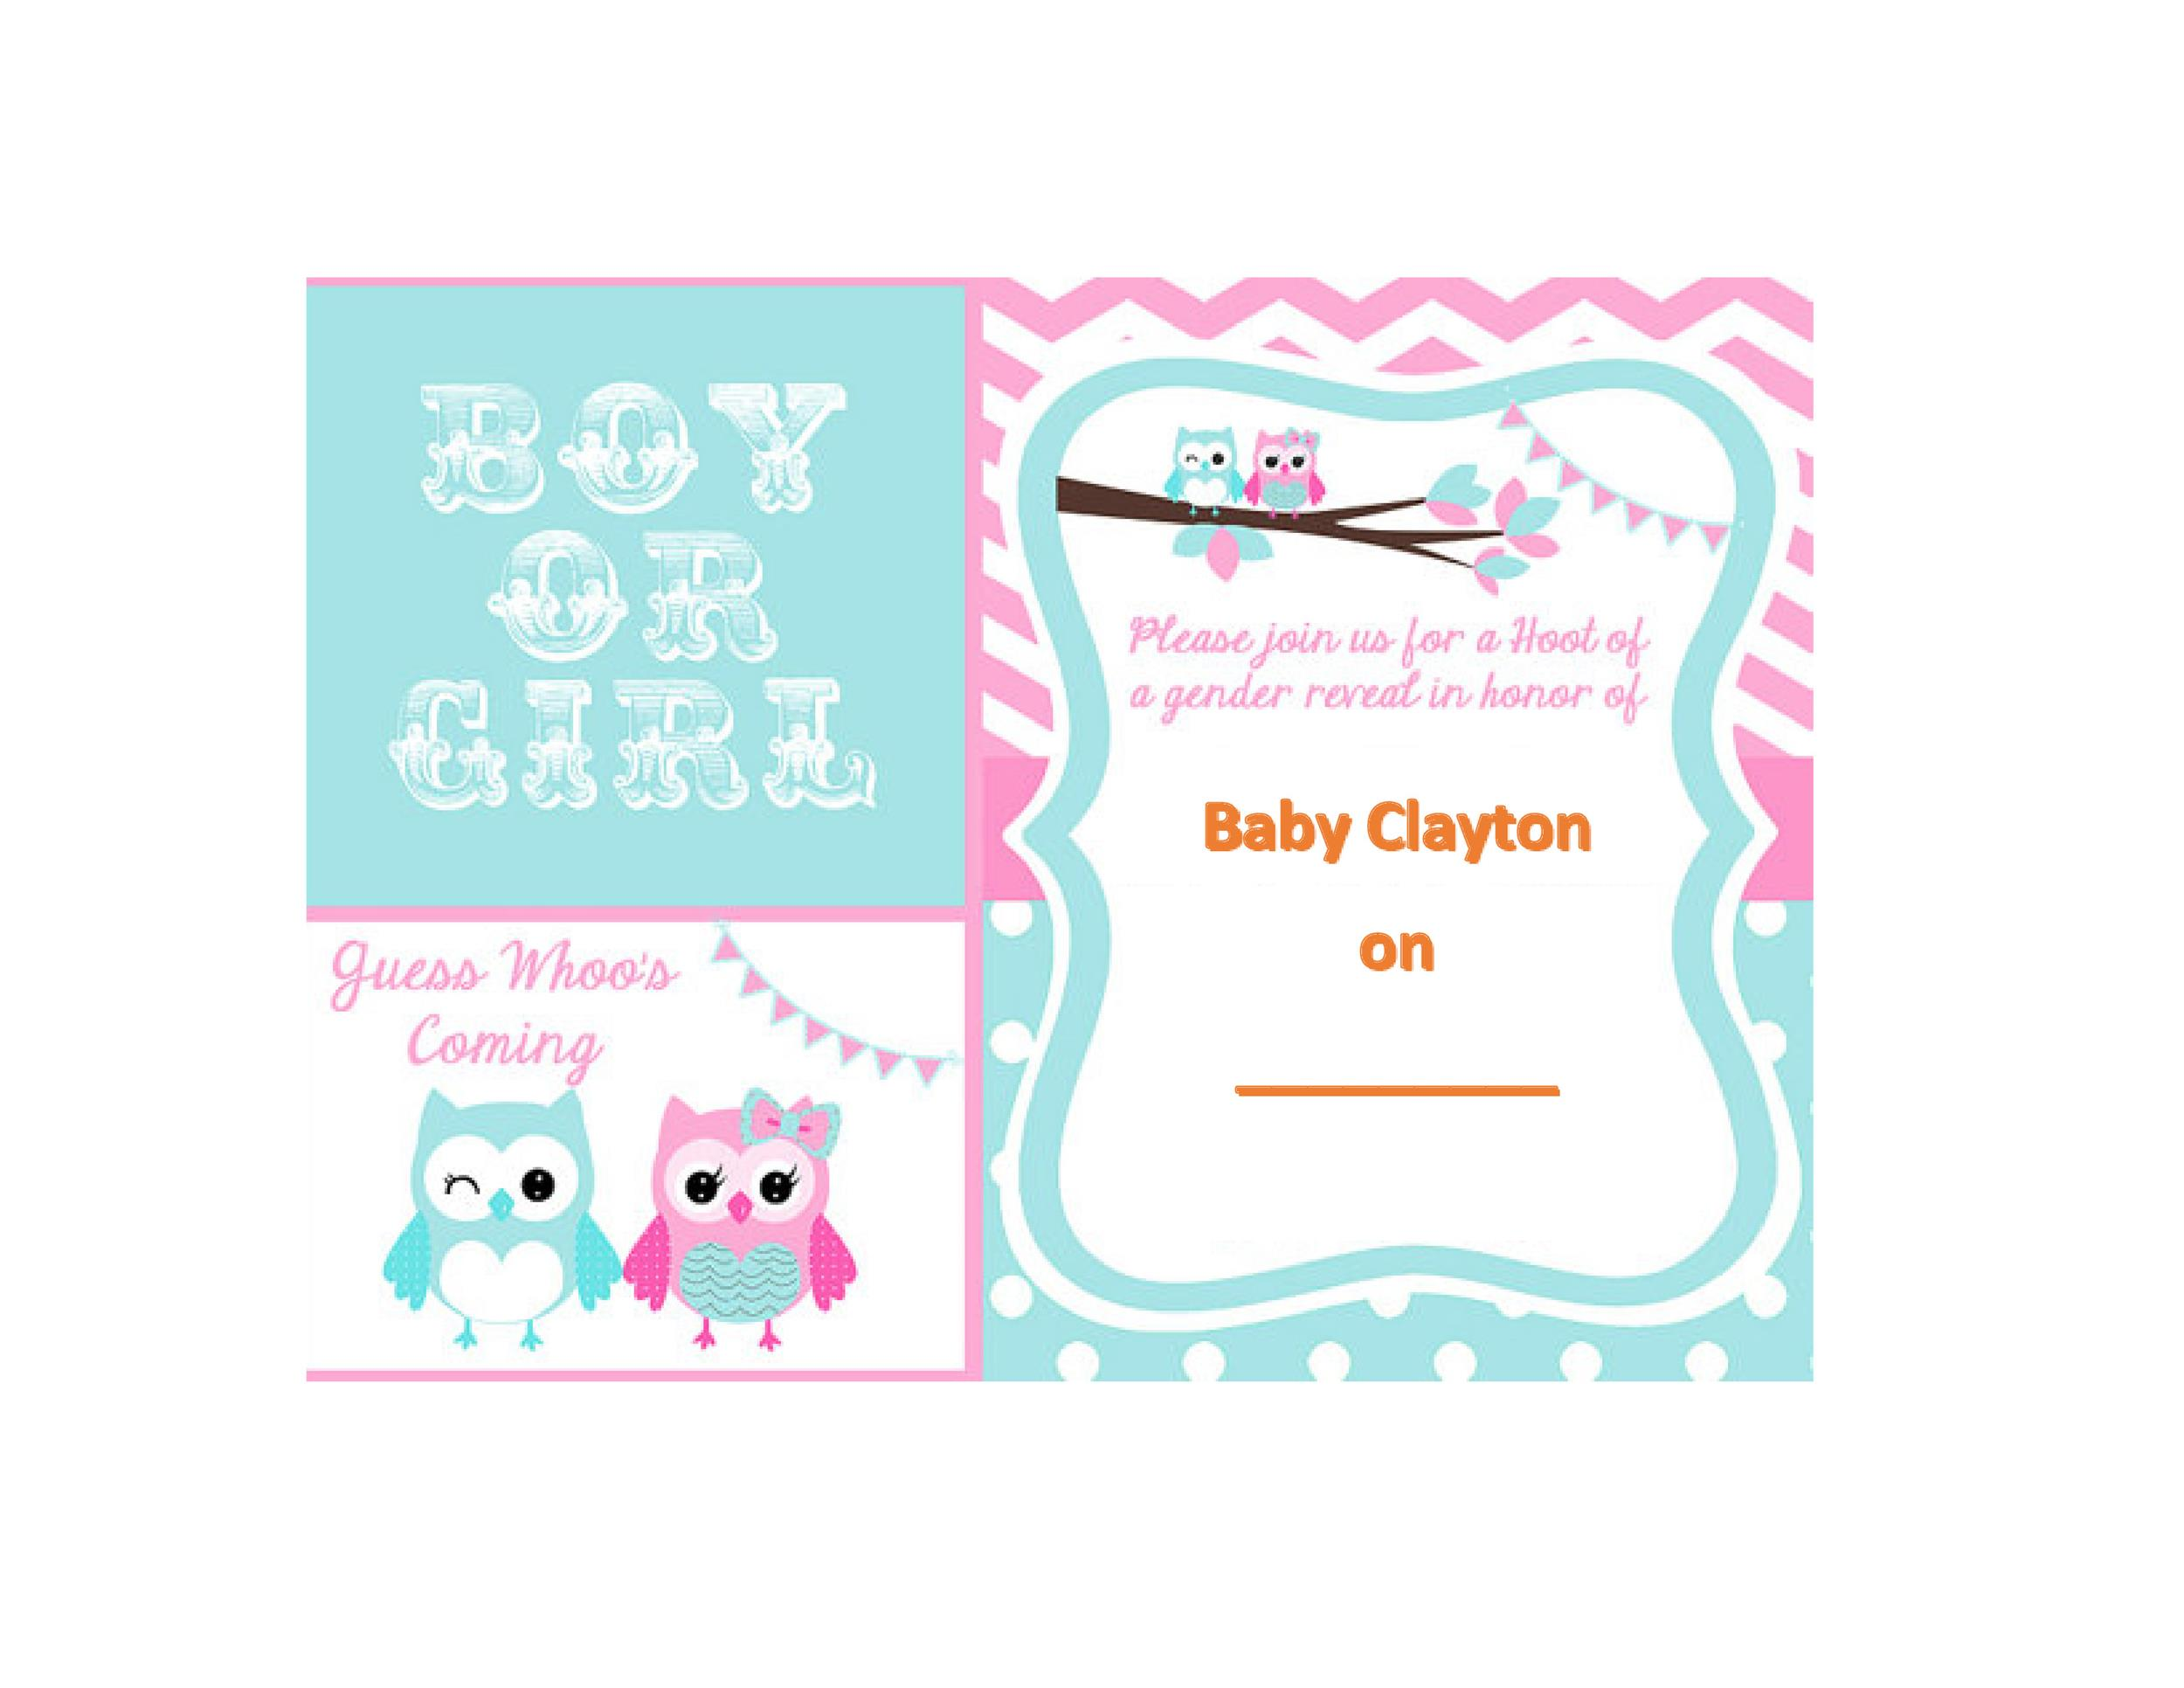 image about Printable Gender Reveal Invitations called 17 Absolutely free Gender Make clear Invitation Templates ᐅ Template Lab